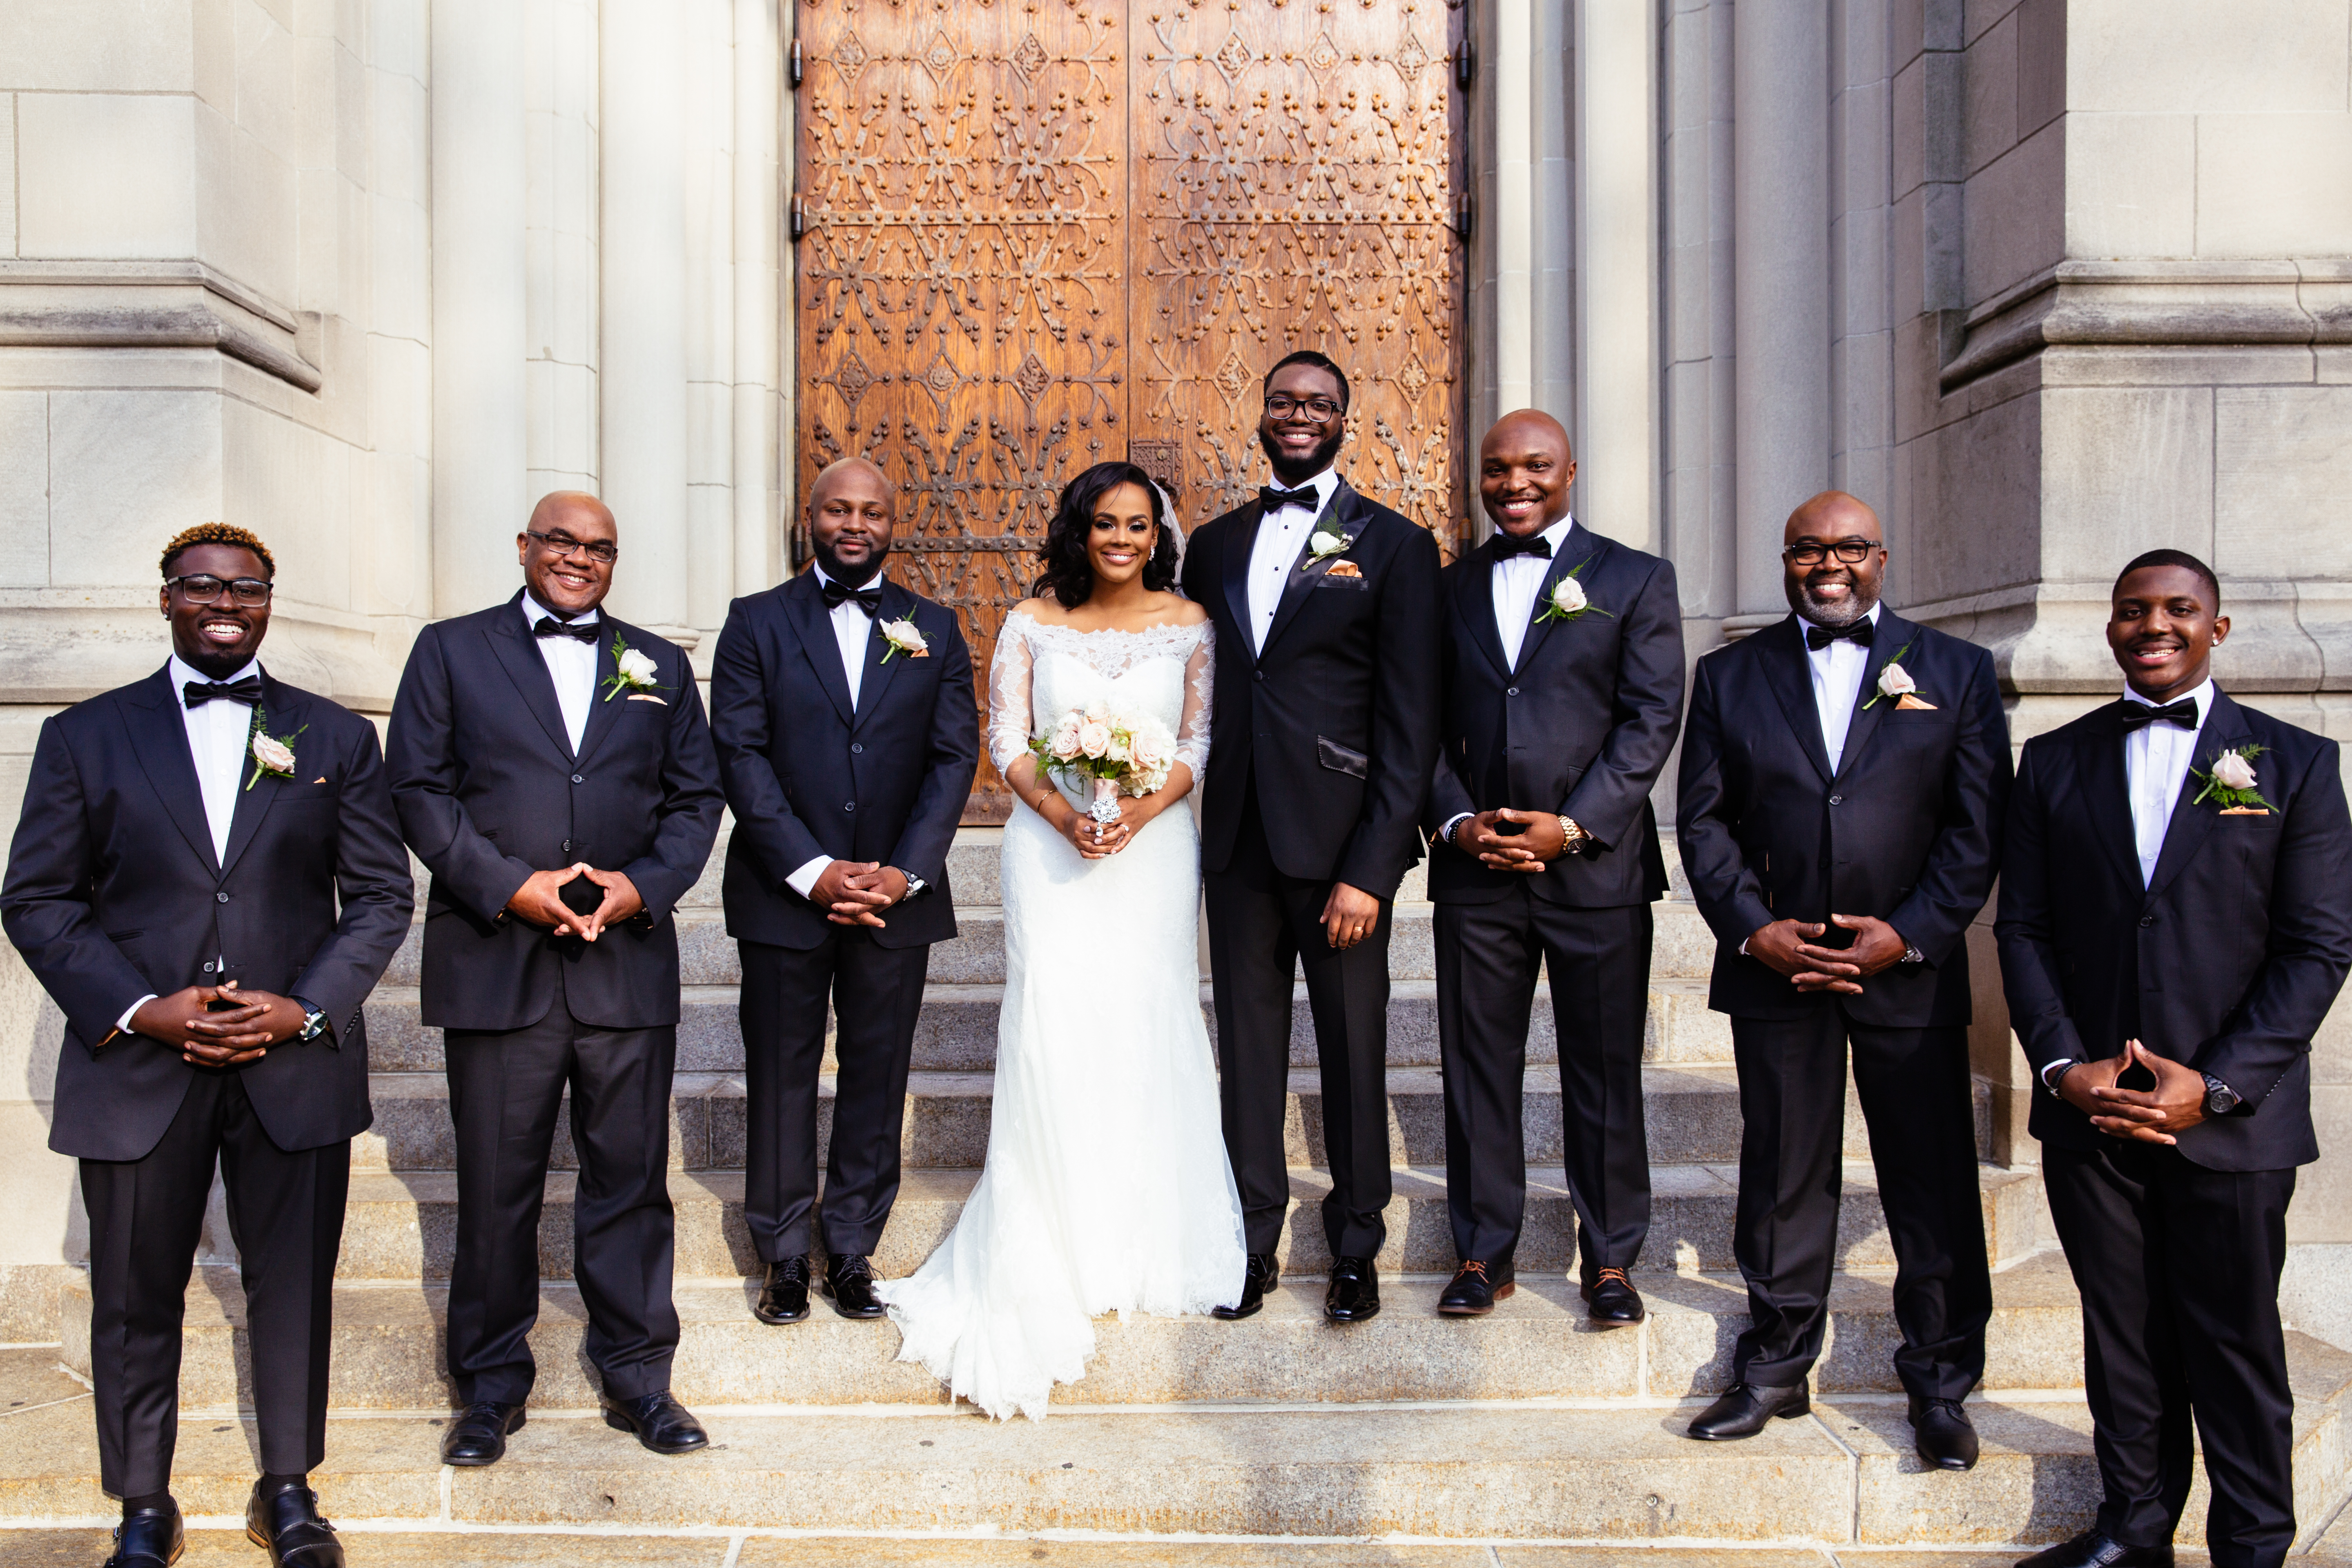 Riverside church groomsmen